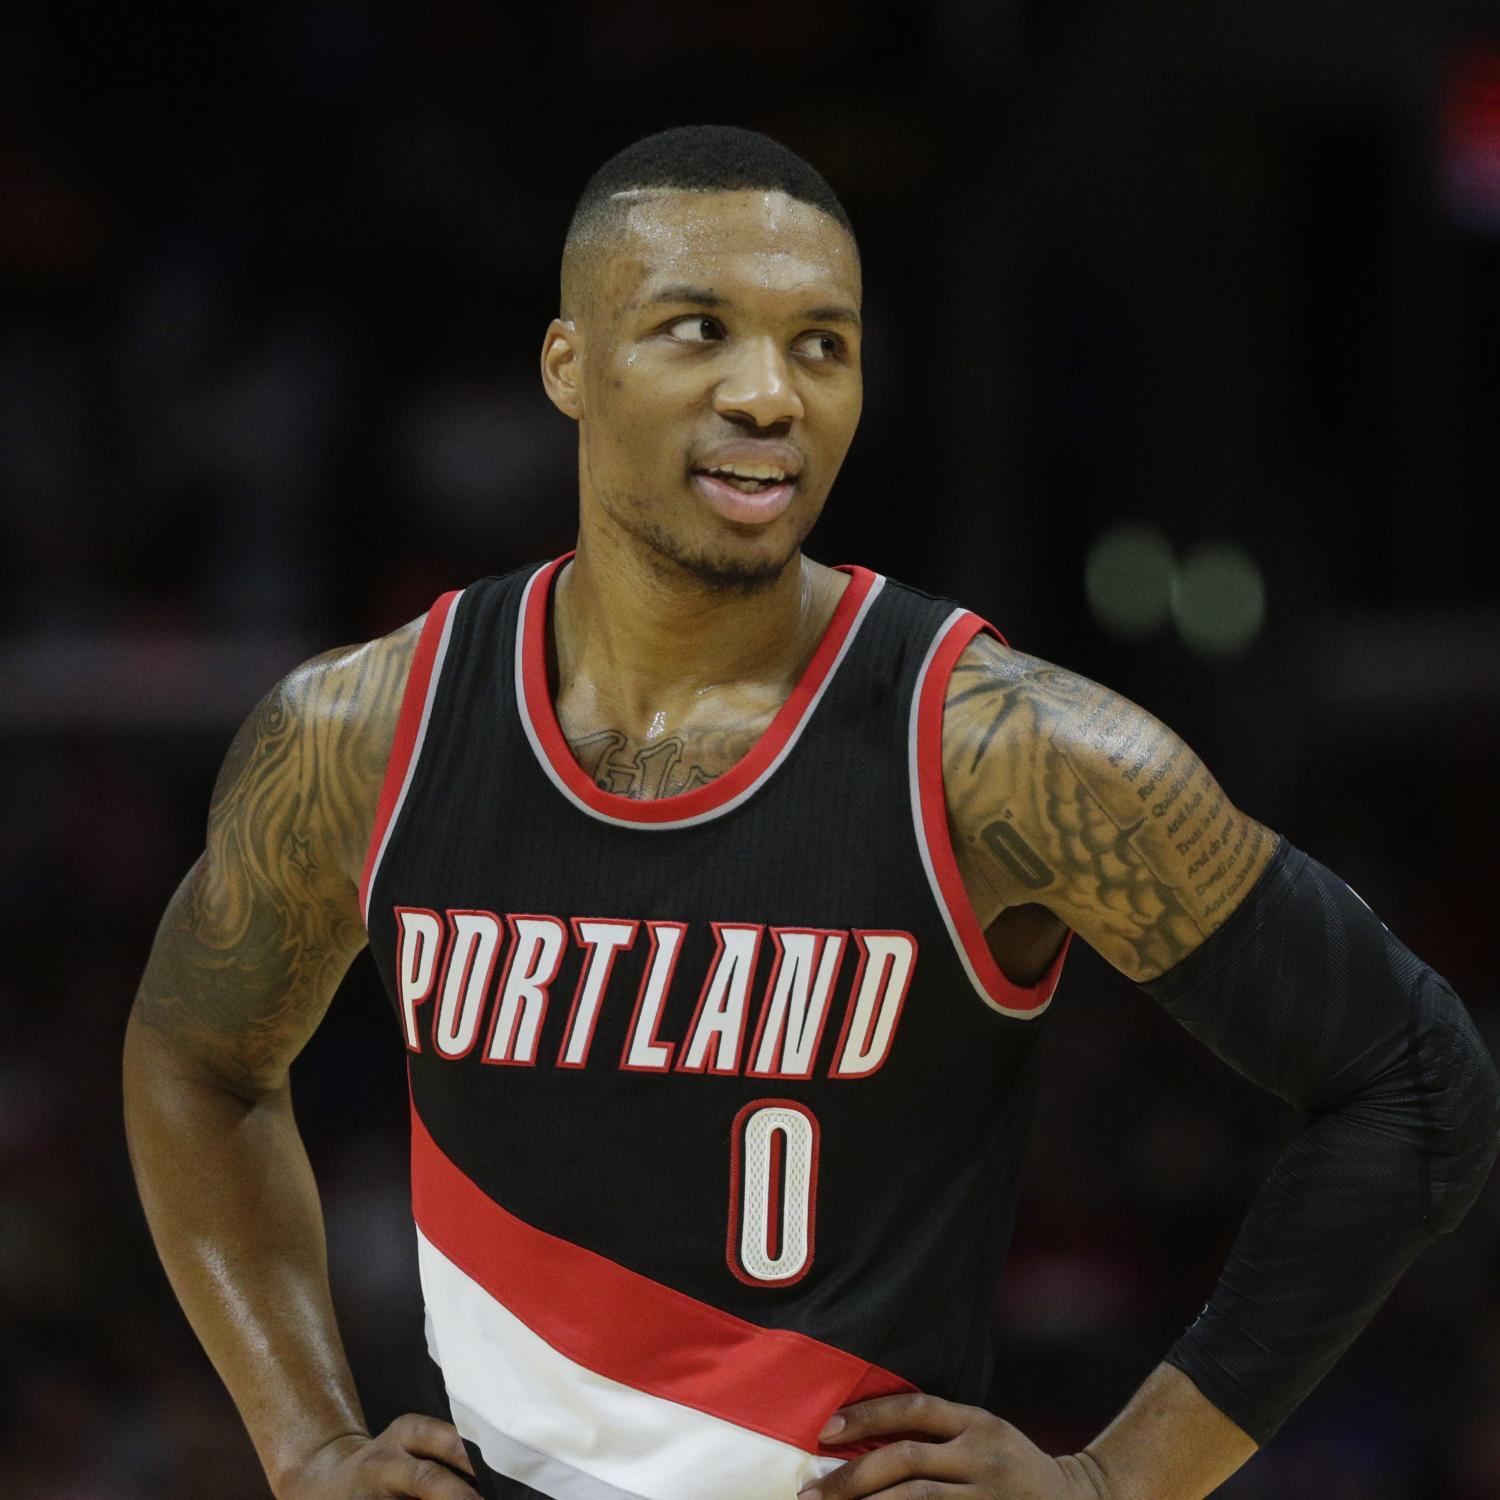 Damian Lillard: Damian Lillard Evaporated Some Poor, Foolish Lakers Fan On